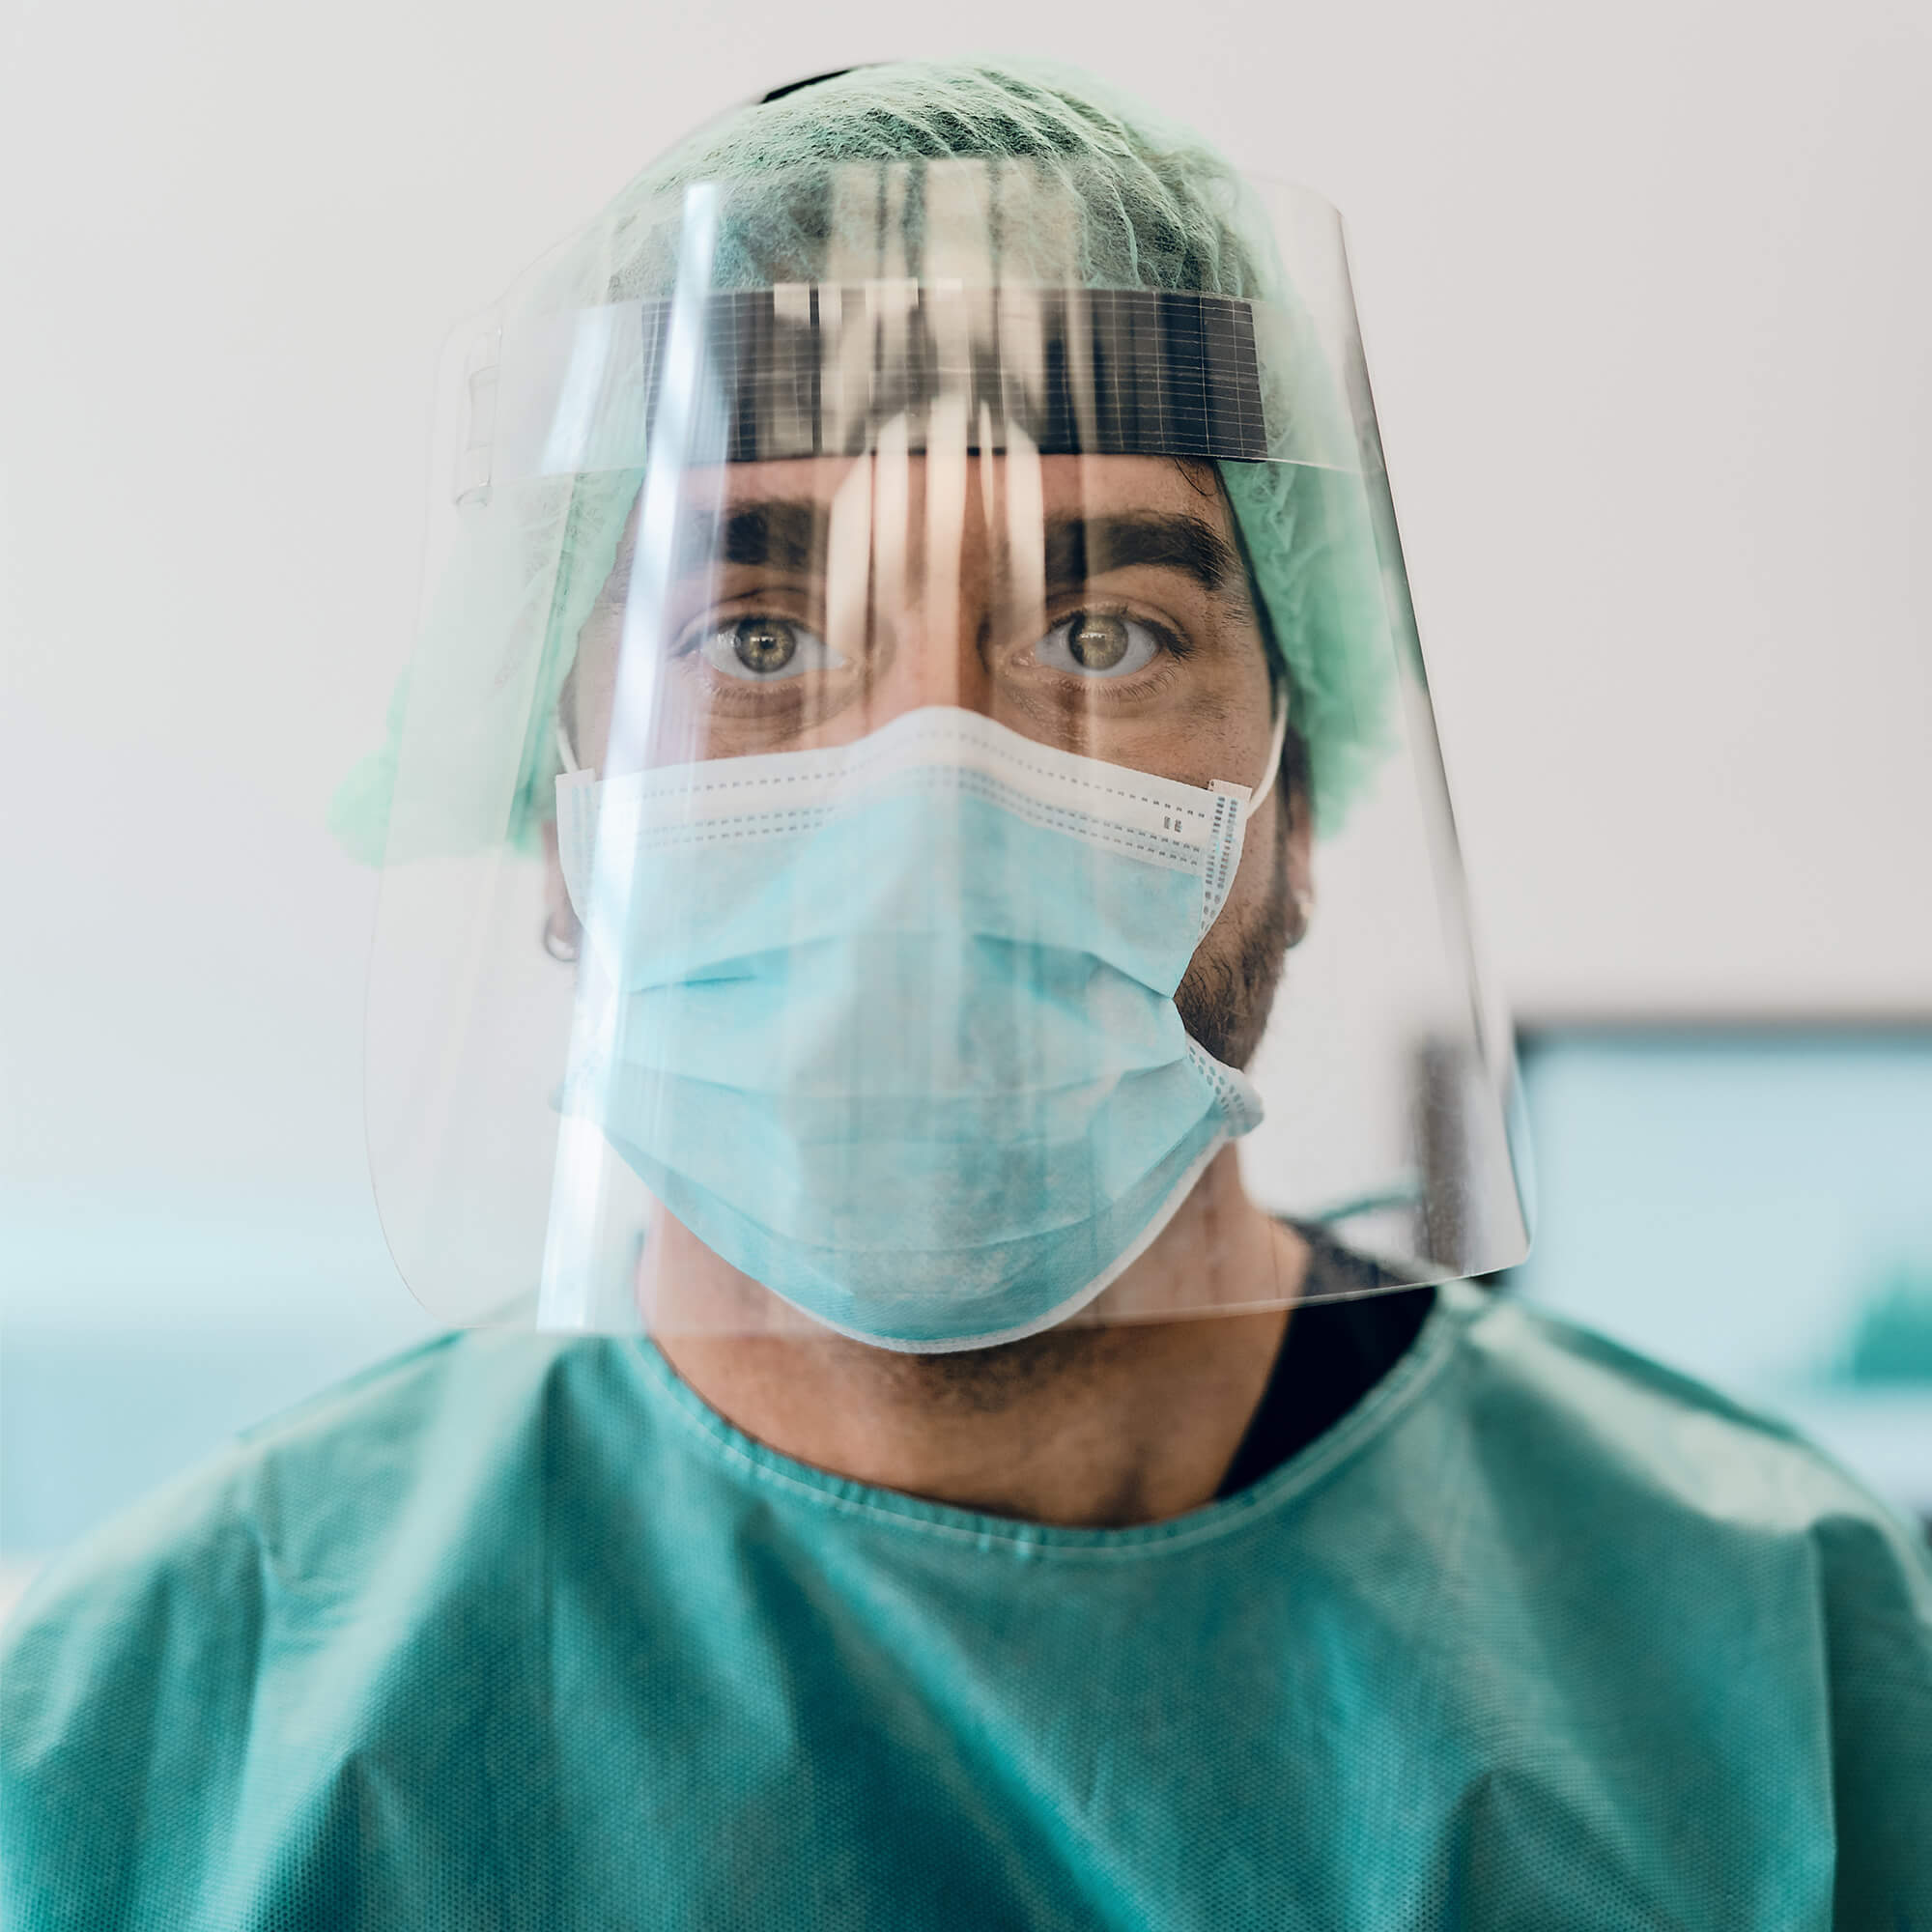 A medical professional wearing PPE